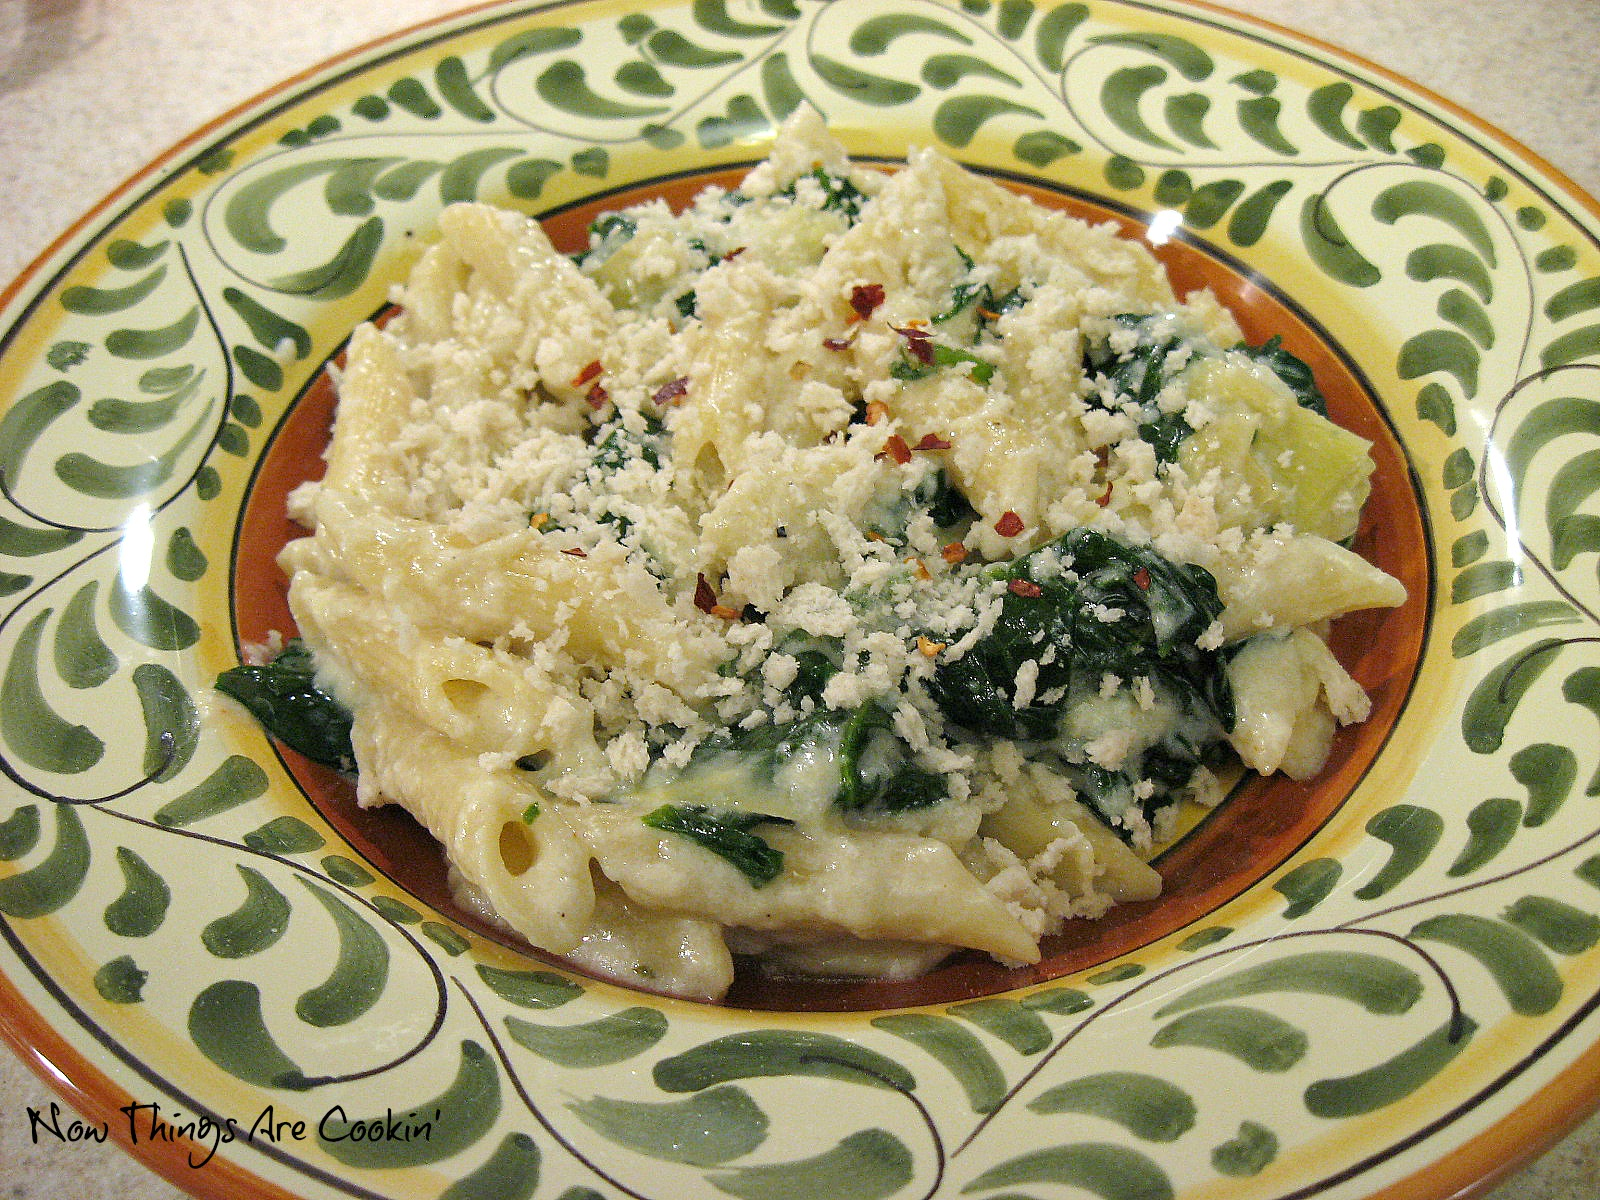 ... Things are Cookin': Weekend Recipe Review - Spinach Artichoke Pasta